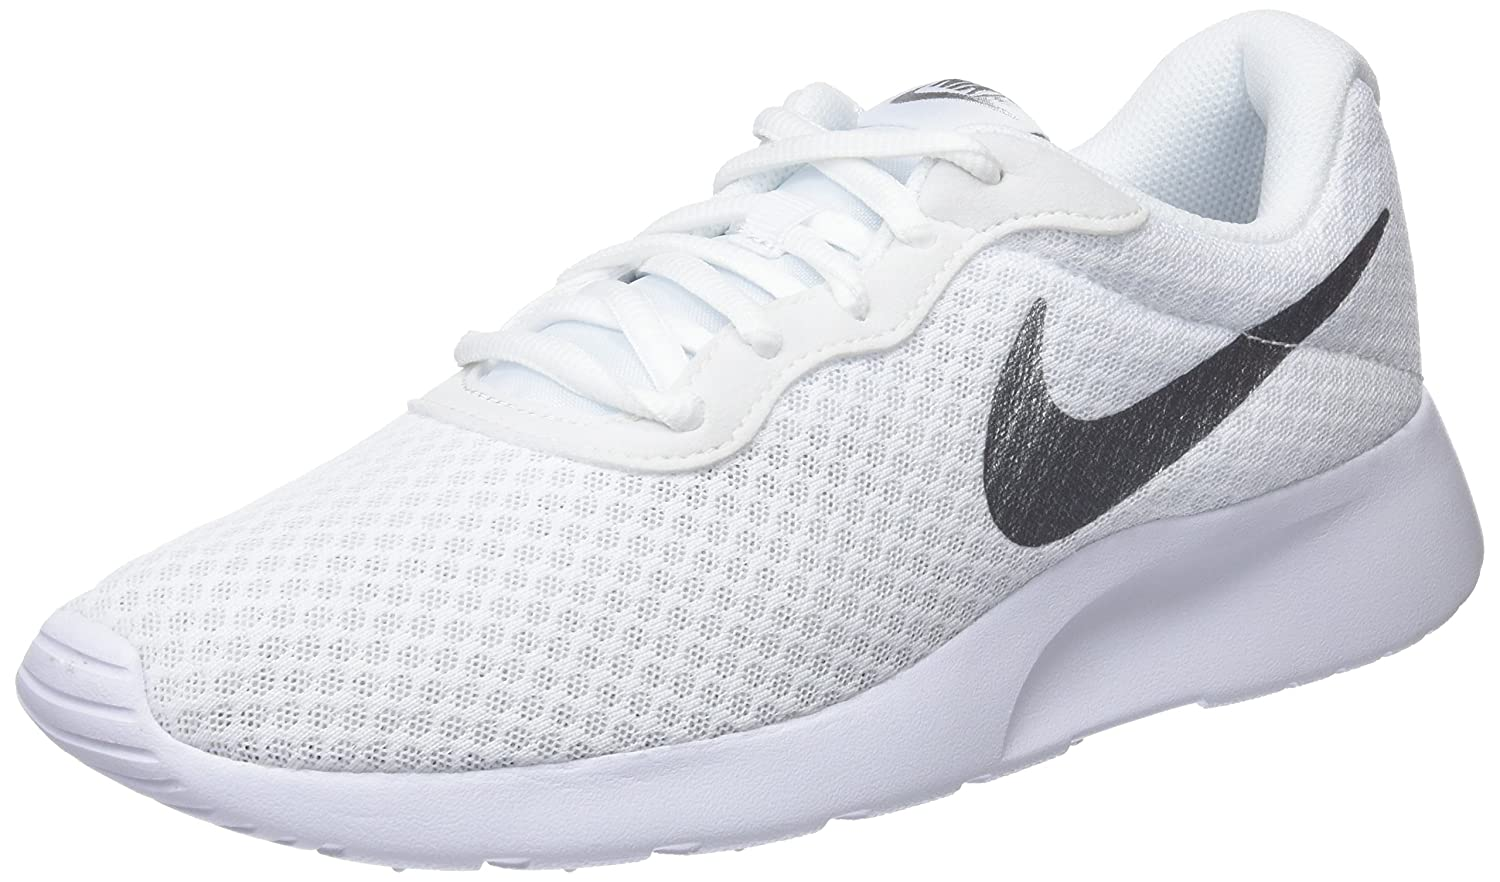 NIKE Women's Tanjun Running Shoes B06VWN82SX 9 B(M) US|White/Metallic Silver